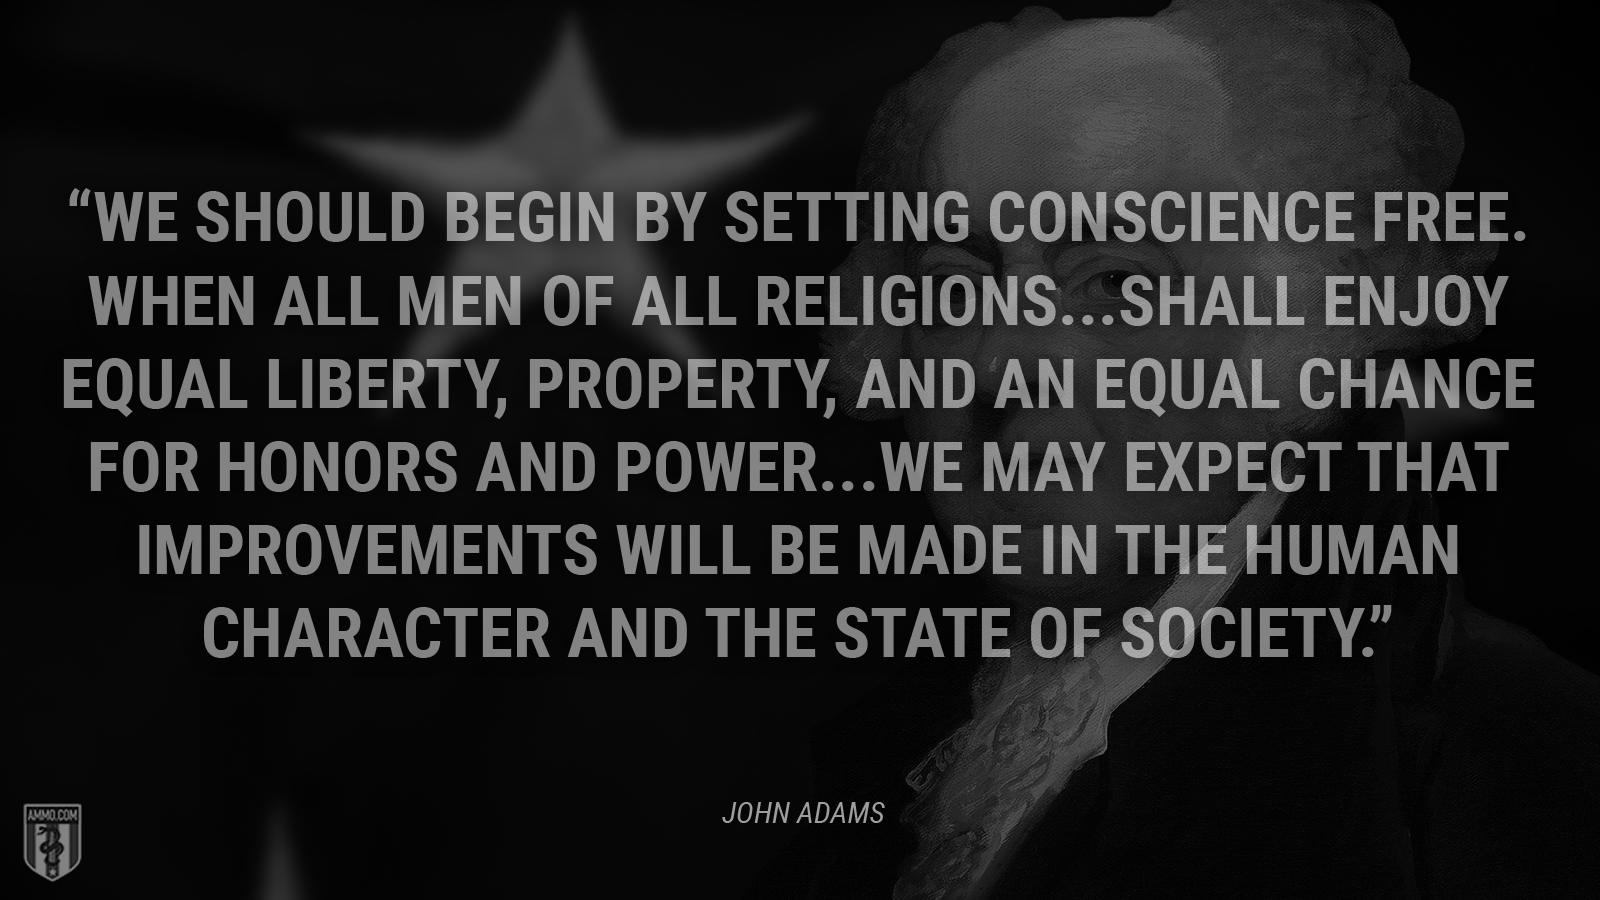 """We should begin by setting conscience free. When all men of all religions … shall enjoy equal liberty, property, and an equal chance for honors and power … we may expect that improvements will be made in the human character and the state of society."" - John Adams"